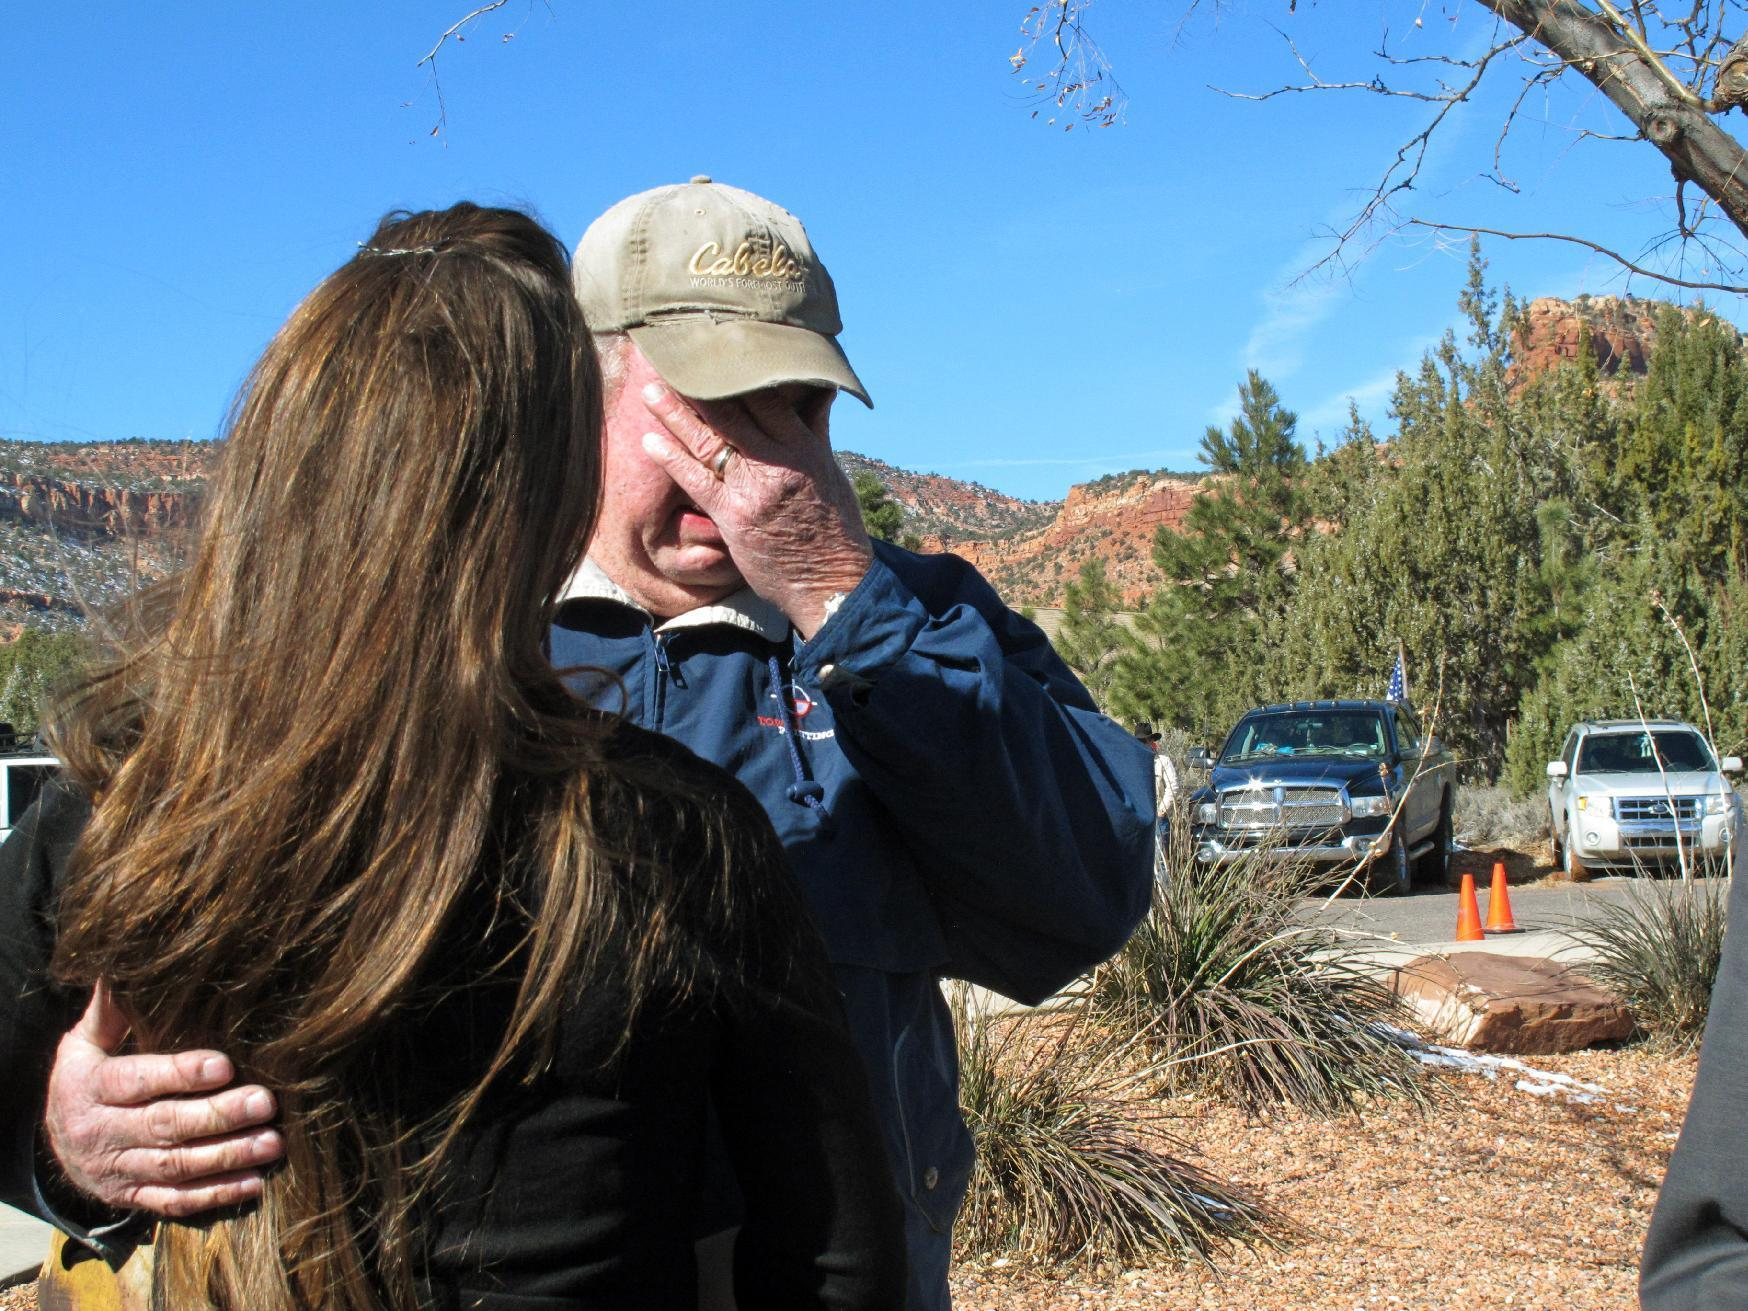 Pickups and American flags: Supporters mourn Oregon occupier